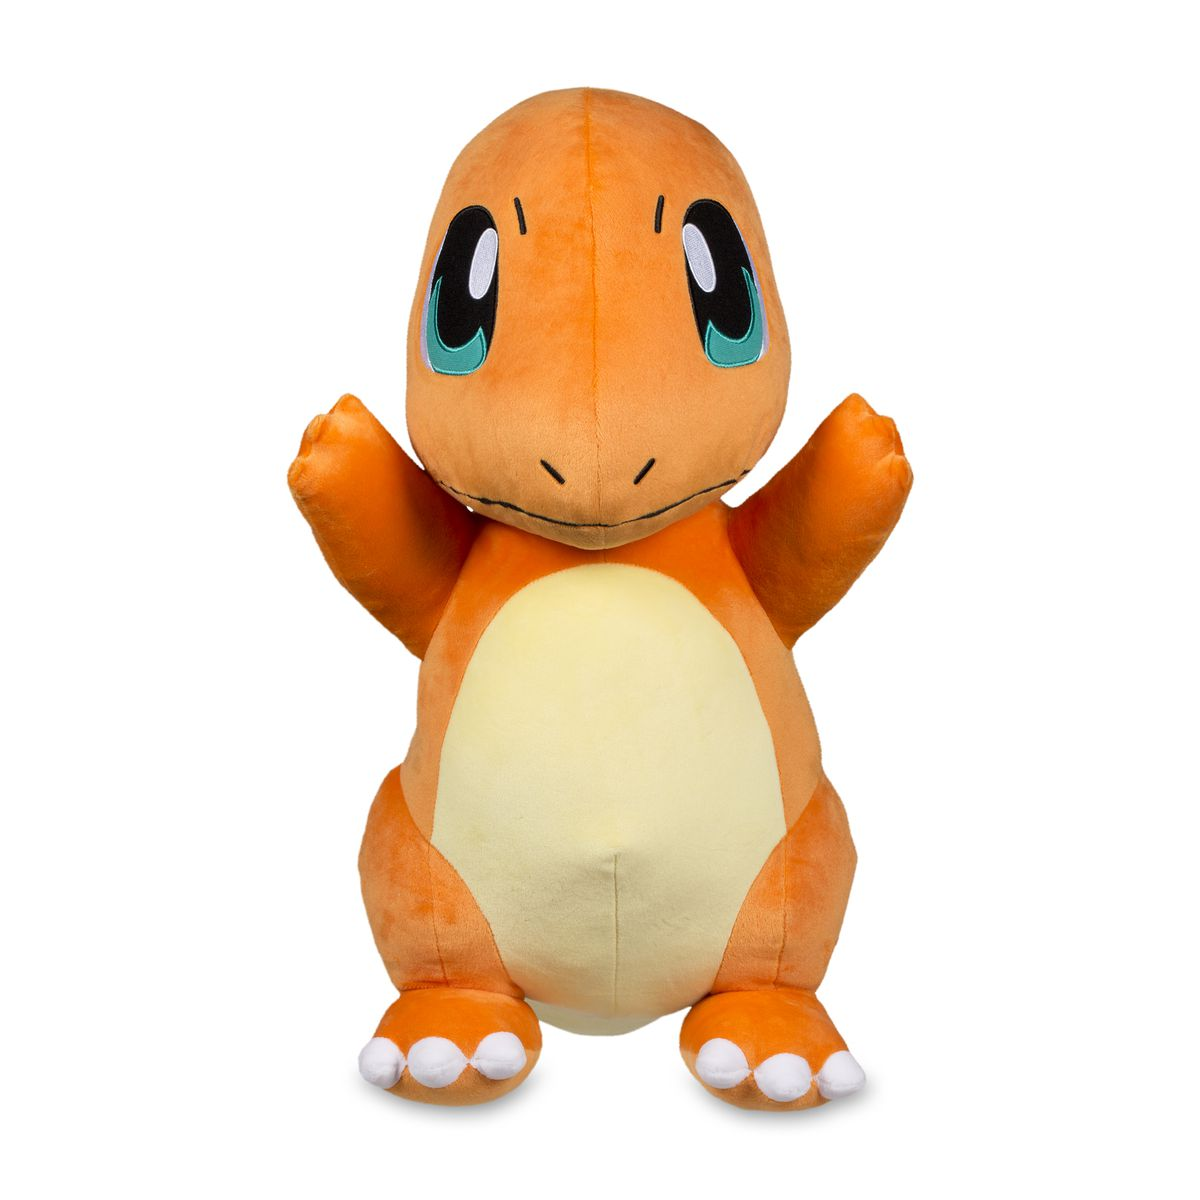 Super Soft Stuffed Animals For Babies, Jumbo Pokemon Plushes Where To Buy A Giant Stuffed Pikachu And More Polygon